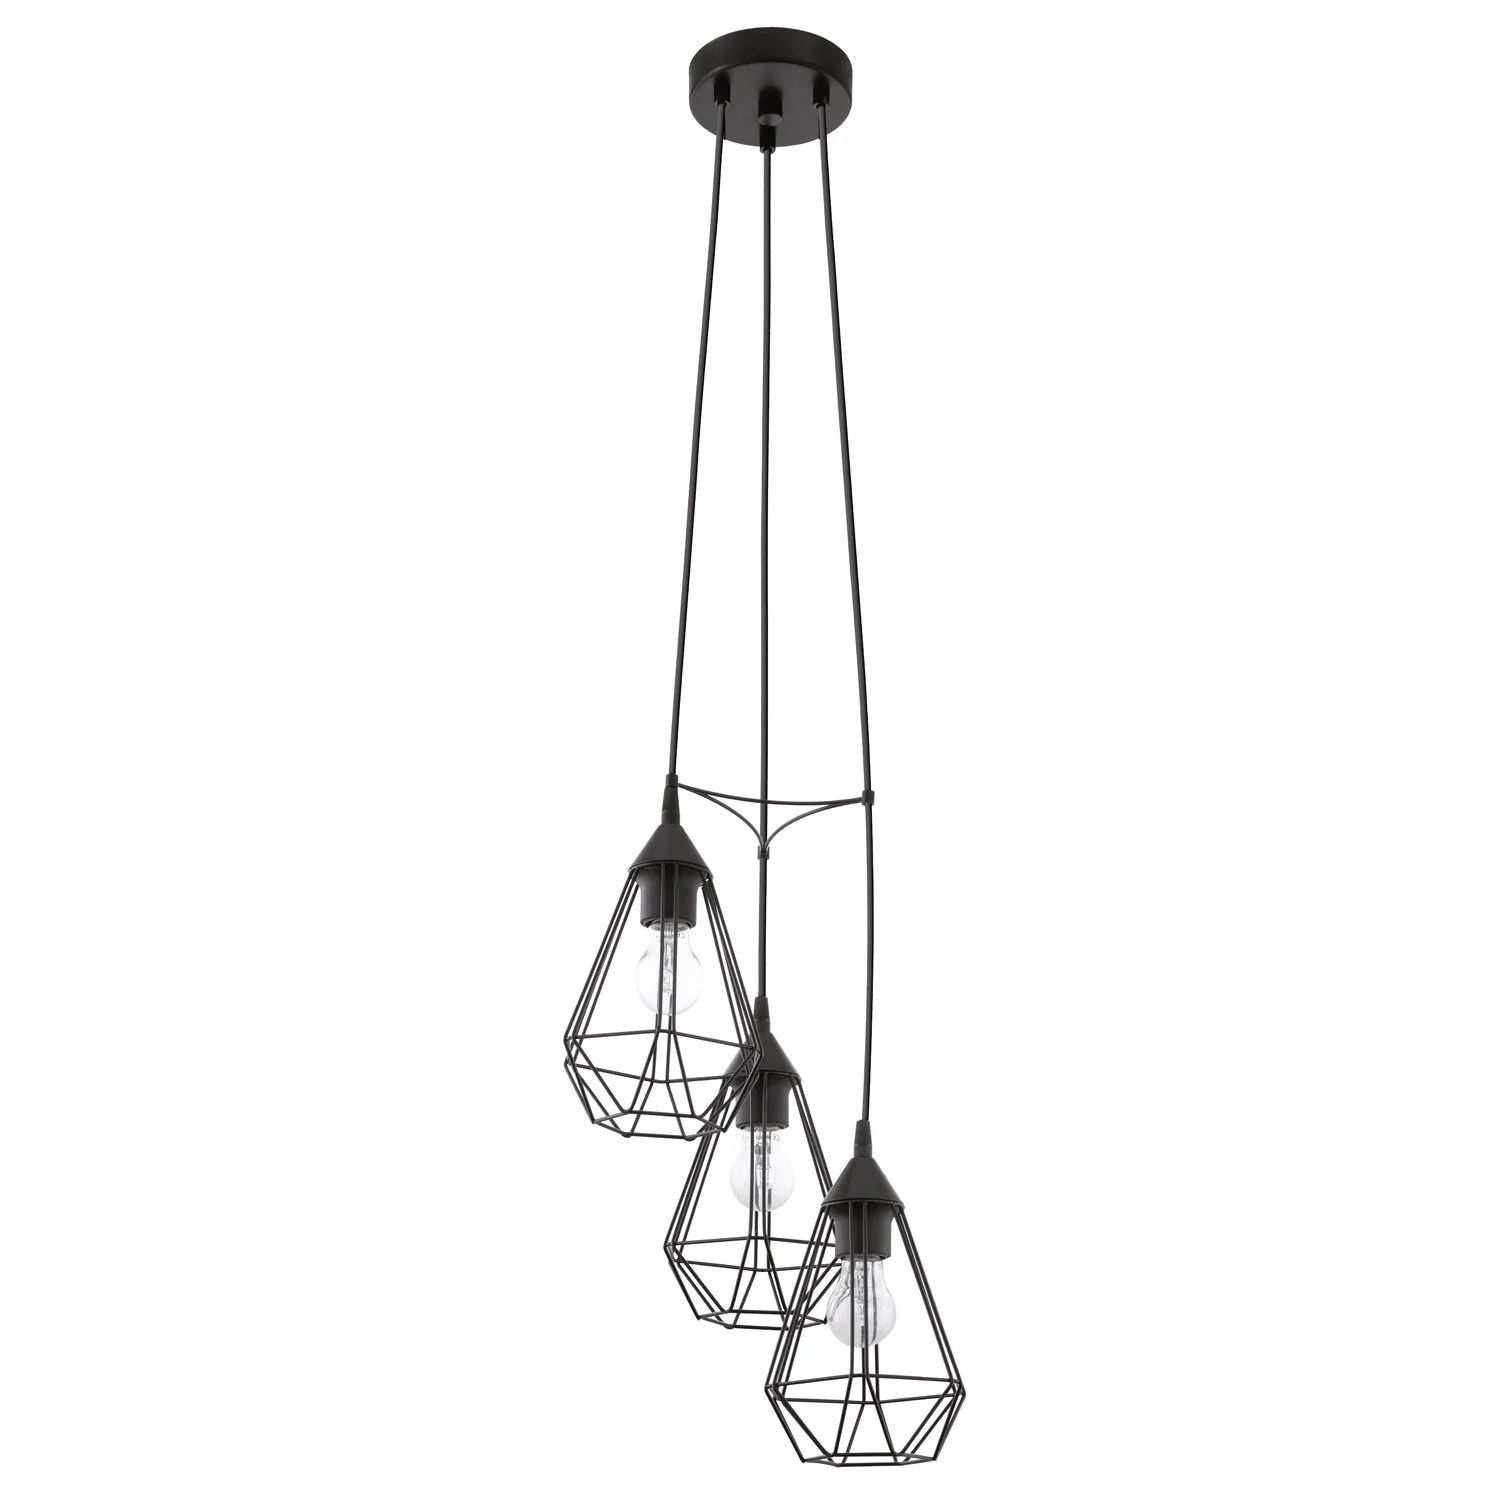 Store Banne Motorisé Leroy Merlin Luminaire Alinea Suspension | Salon Suspension Salon